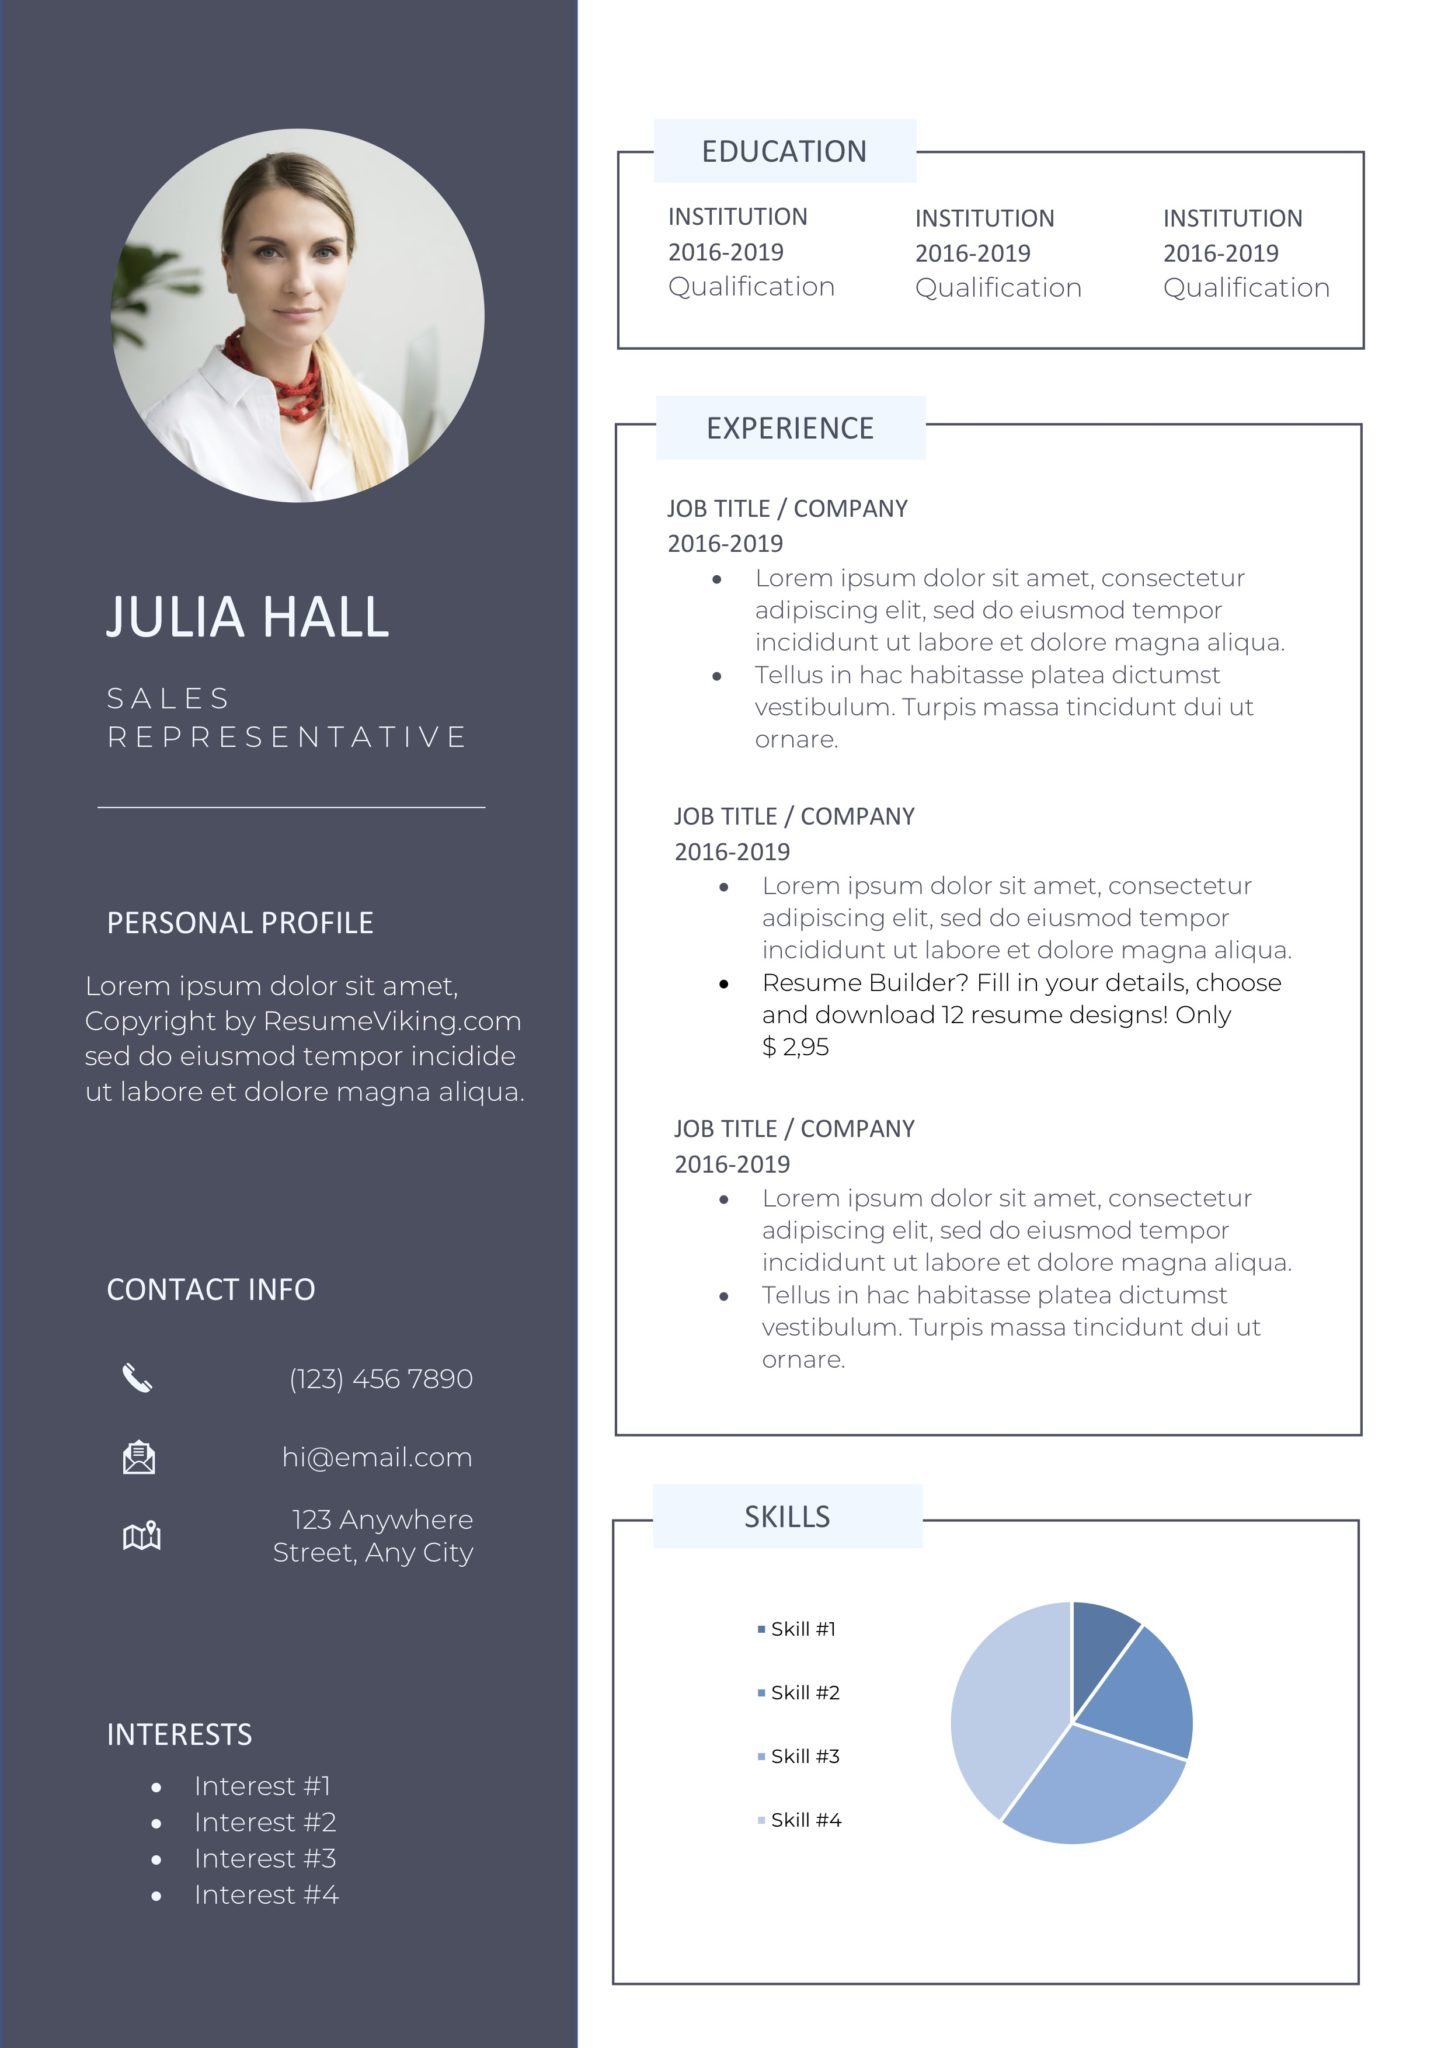 free word resume templates in ms template resumeviking scaled creative design for graphic Resume Resume Template 2020 Word Free